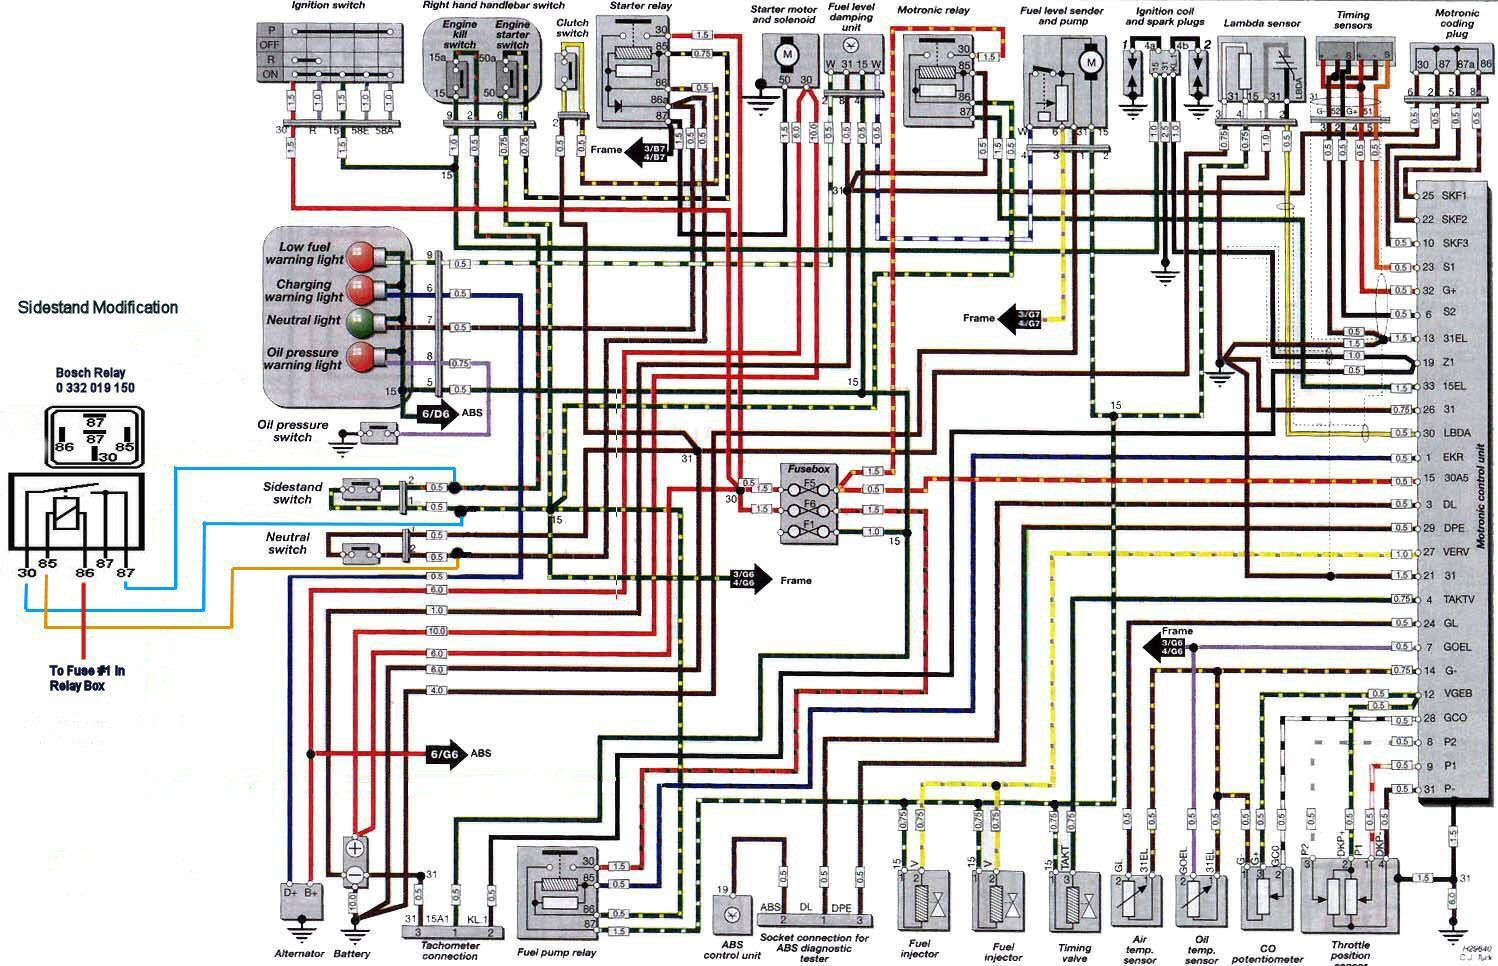 bmw r1150r electrical wiring diagram 1 bike stuff bmw Tomos Wiring Diagram bmw r1150r electrical wiring diagram 1